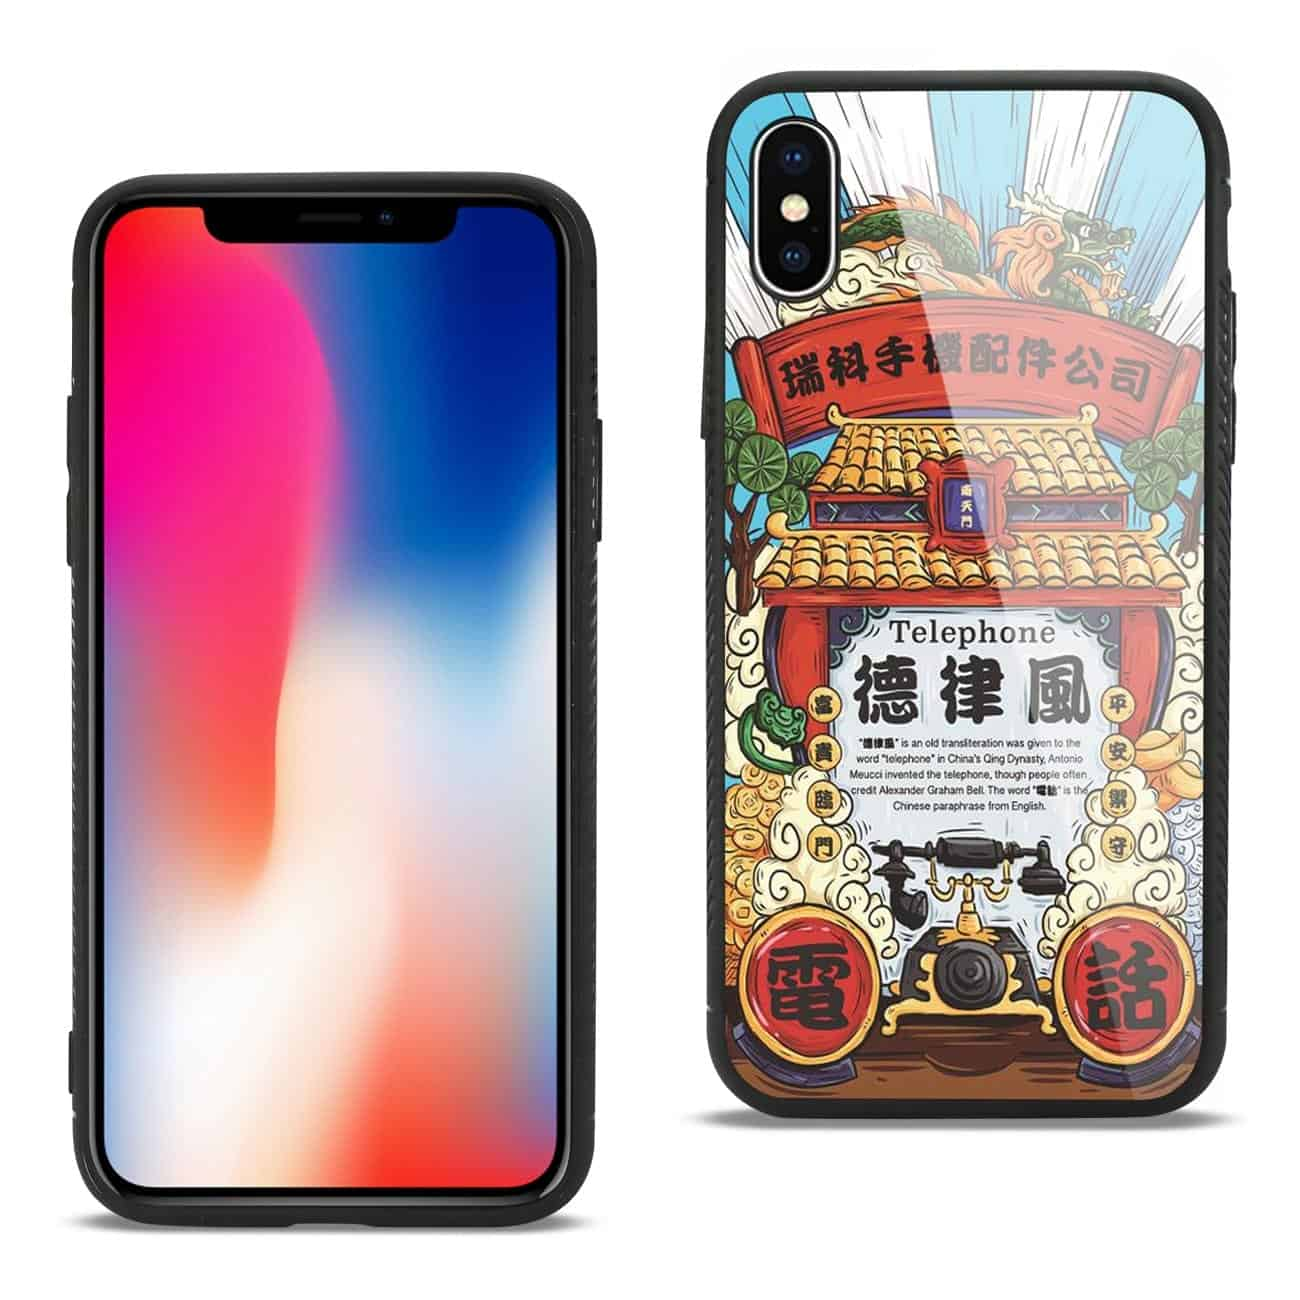 iPhone X/iPhone XS Hard Glass Design TPU Case With Phone